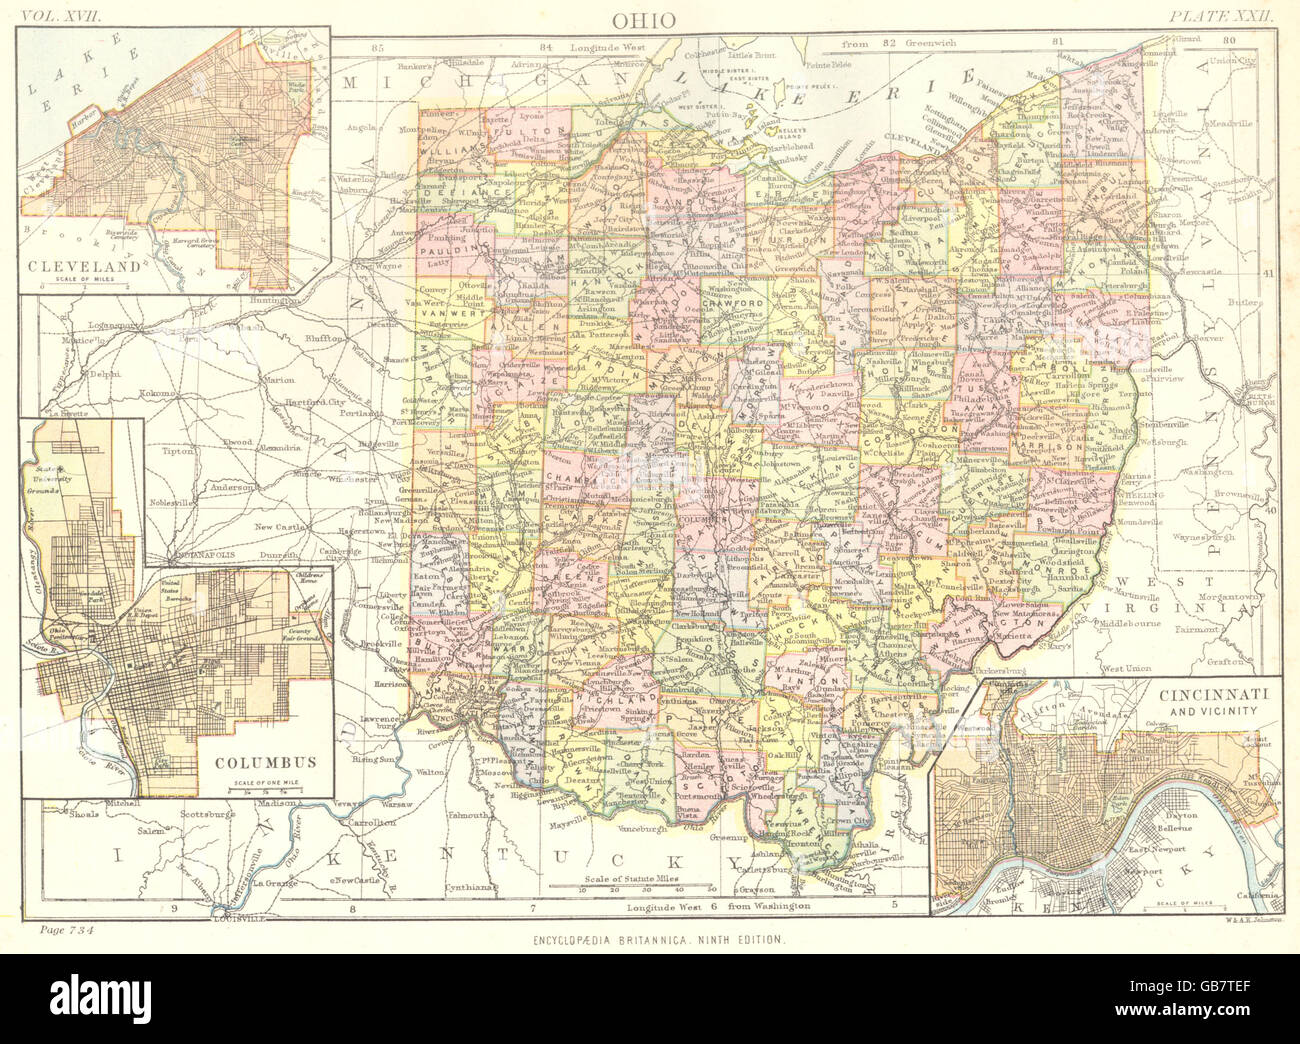 Ohio State Map Showing Counties Inset Cleveland Columbus Stock